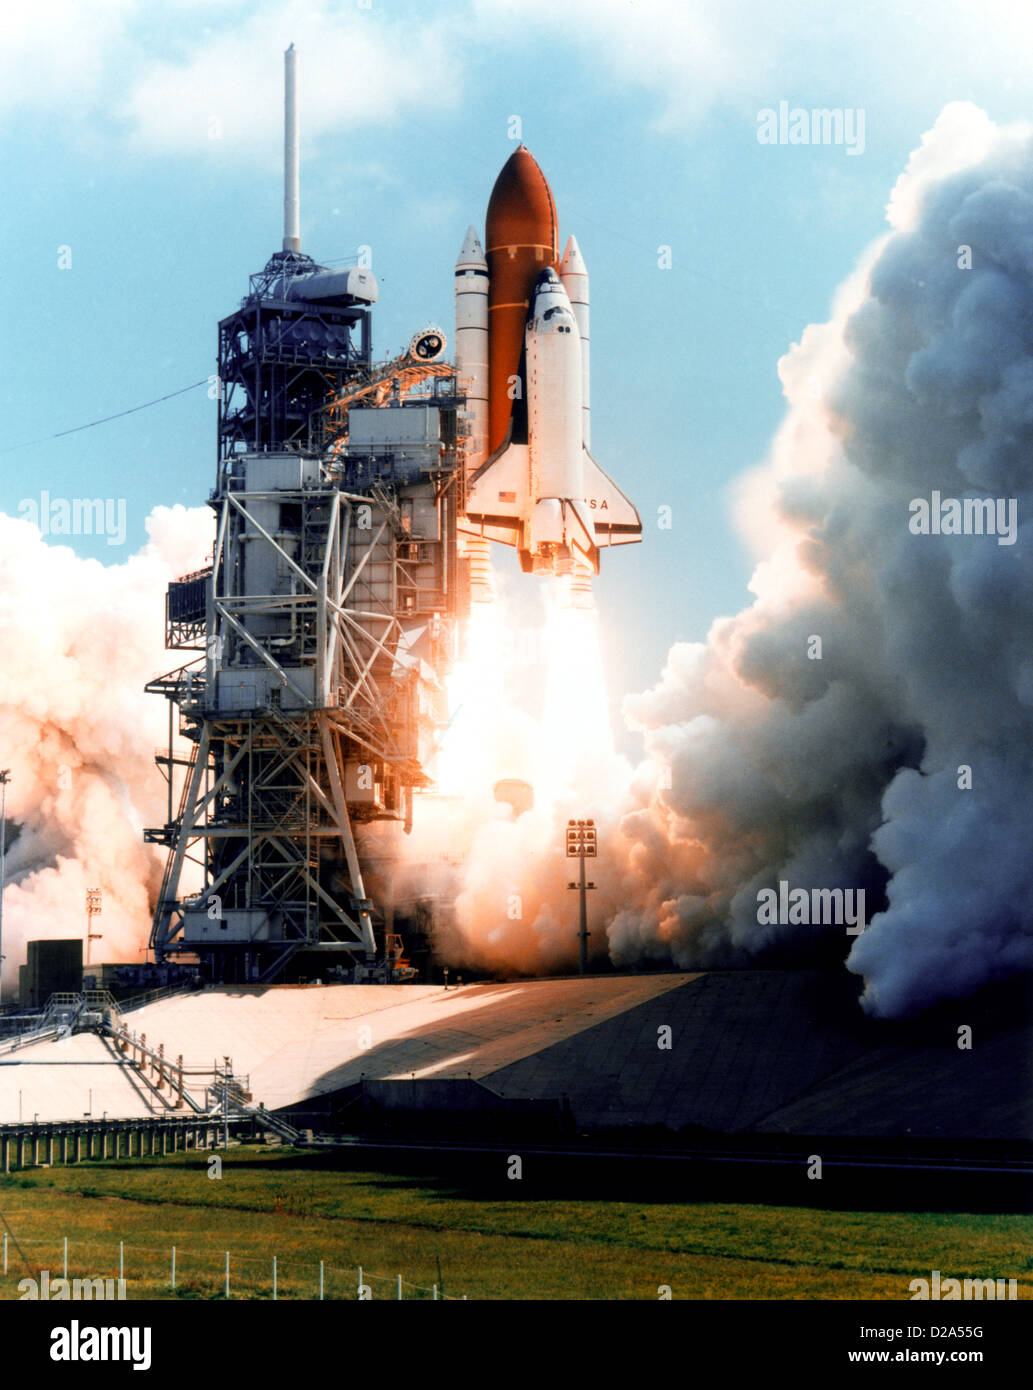 Florida, Kennedy Space Center. Lauch Of Space Shuttle Columbia. - Stock Image